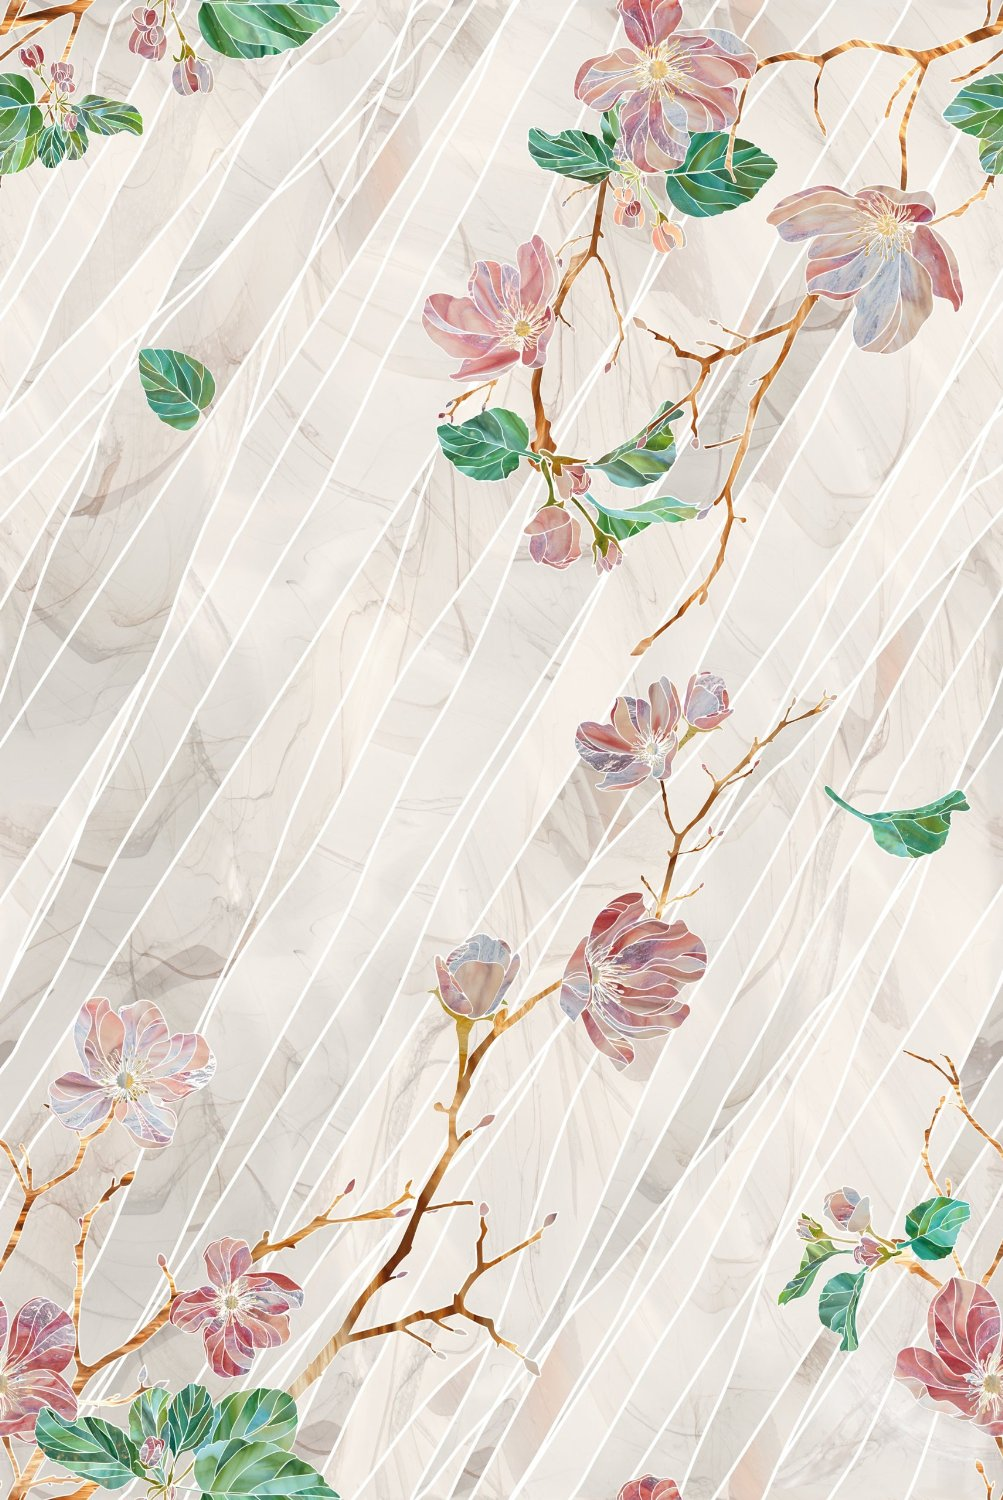 Wild Roses Stained Glass Decorative Window Film